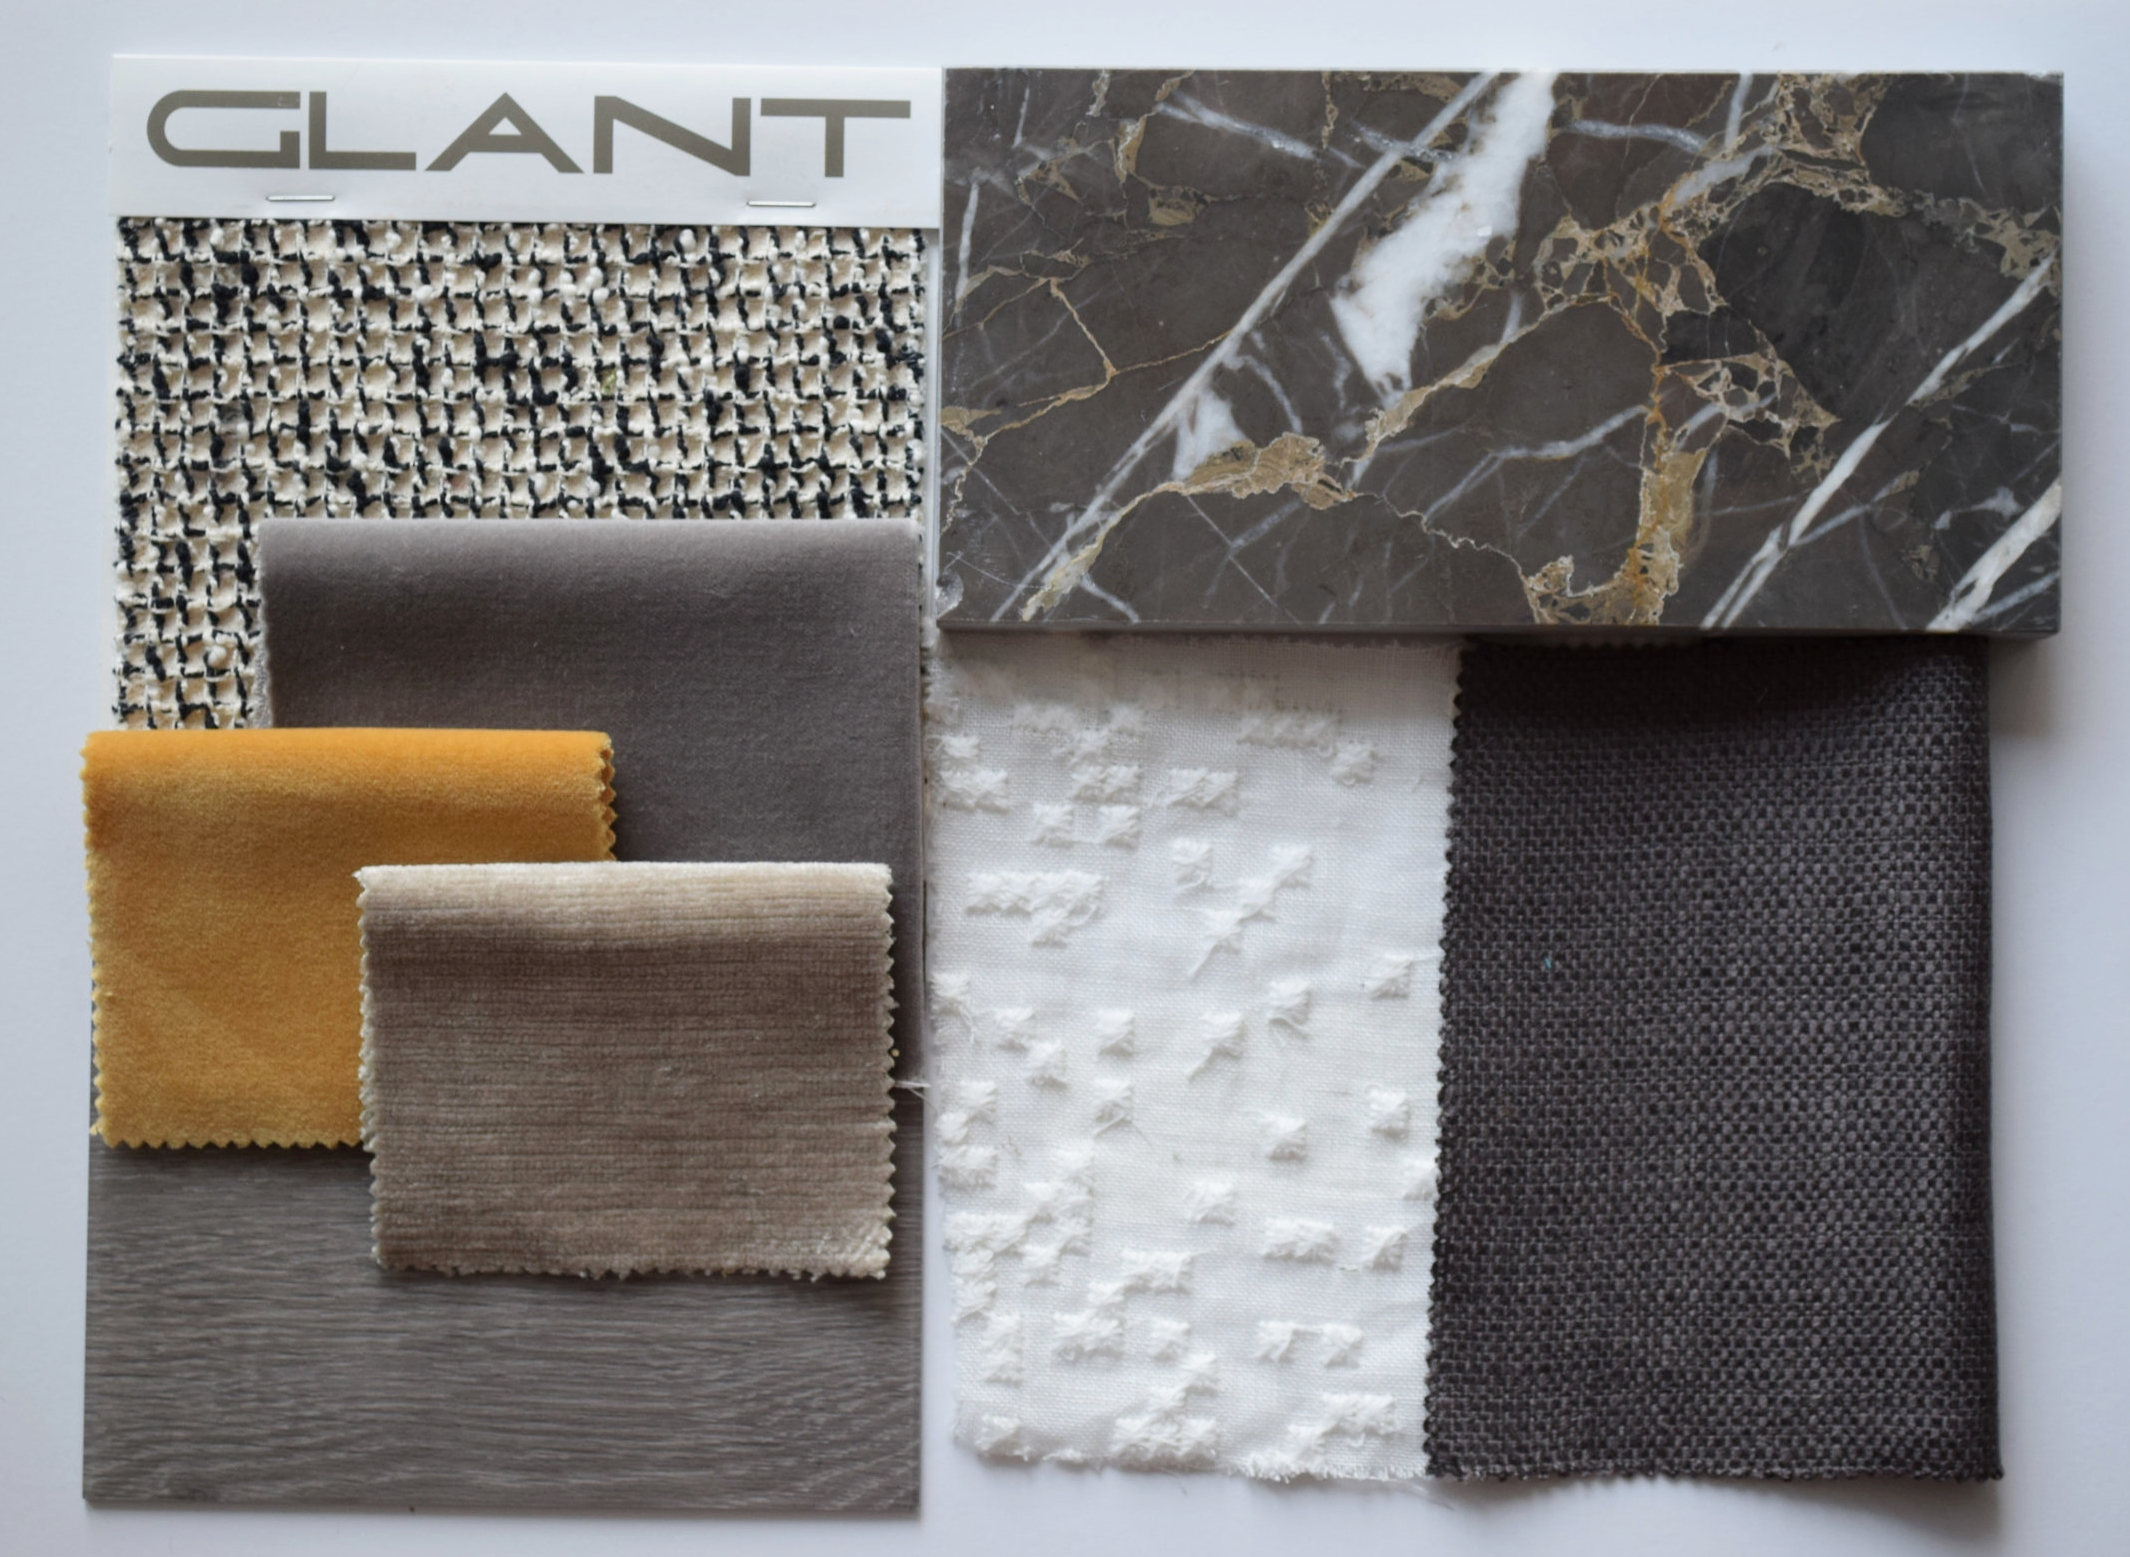 Fabric Sample Board Interior Design by ©Detail Movement 2